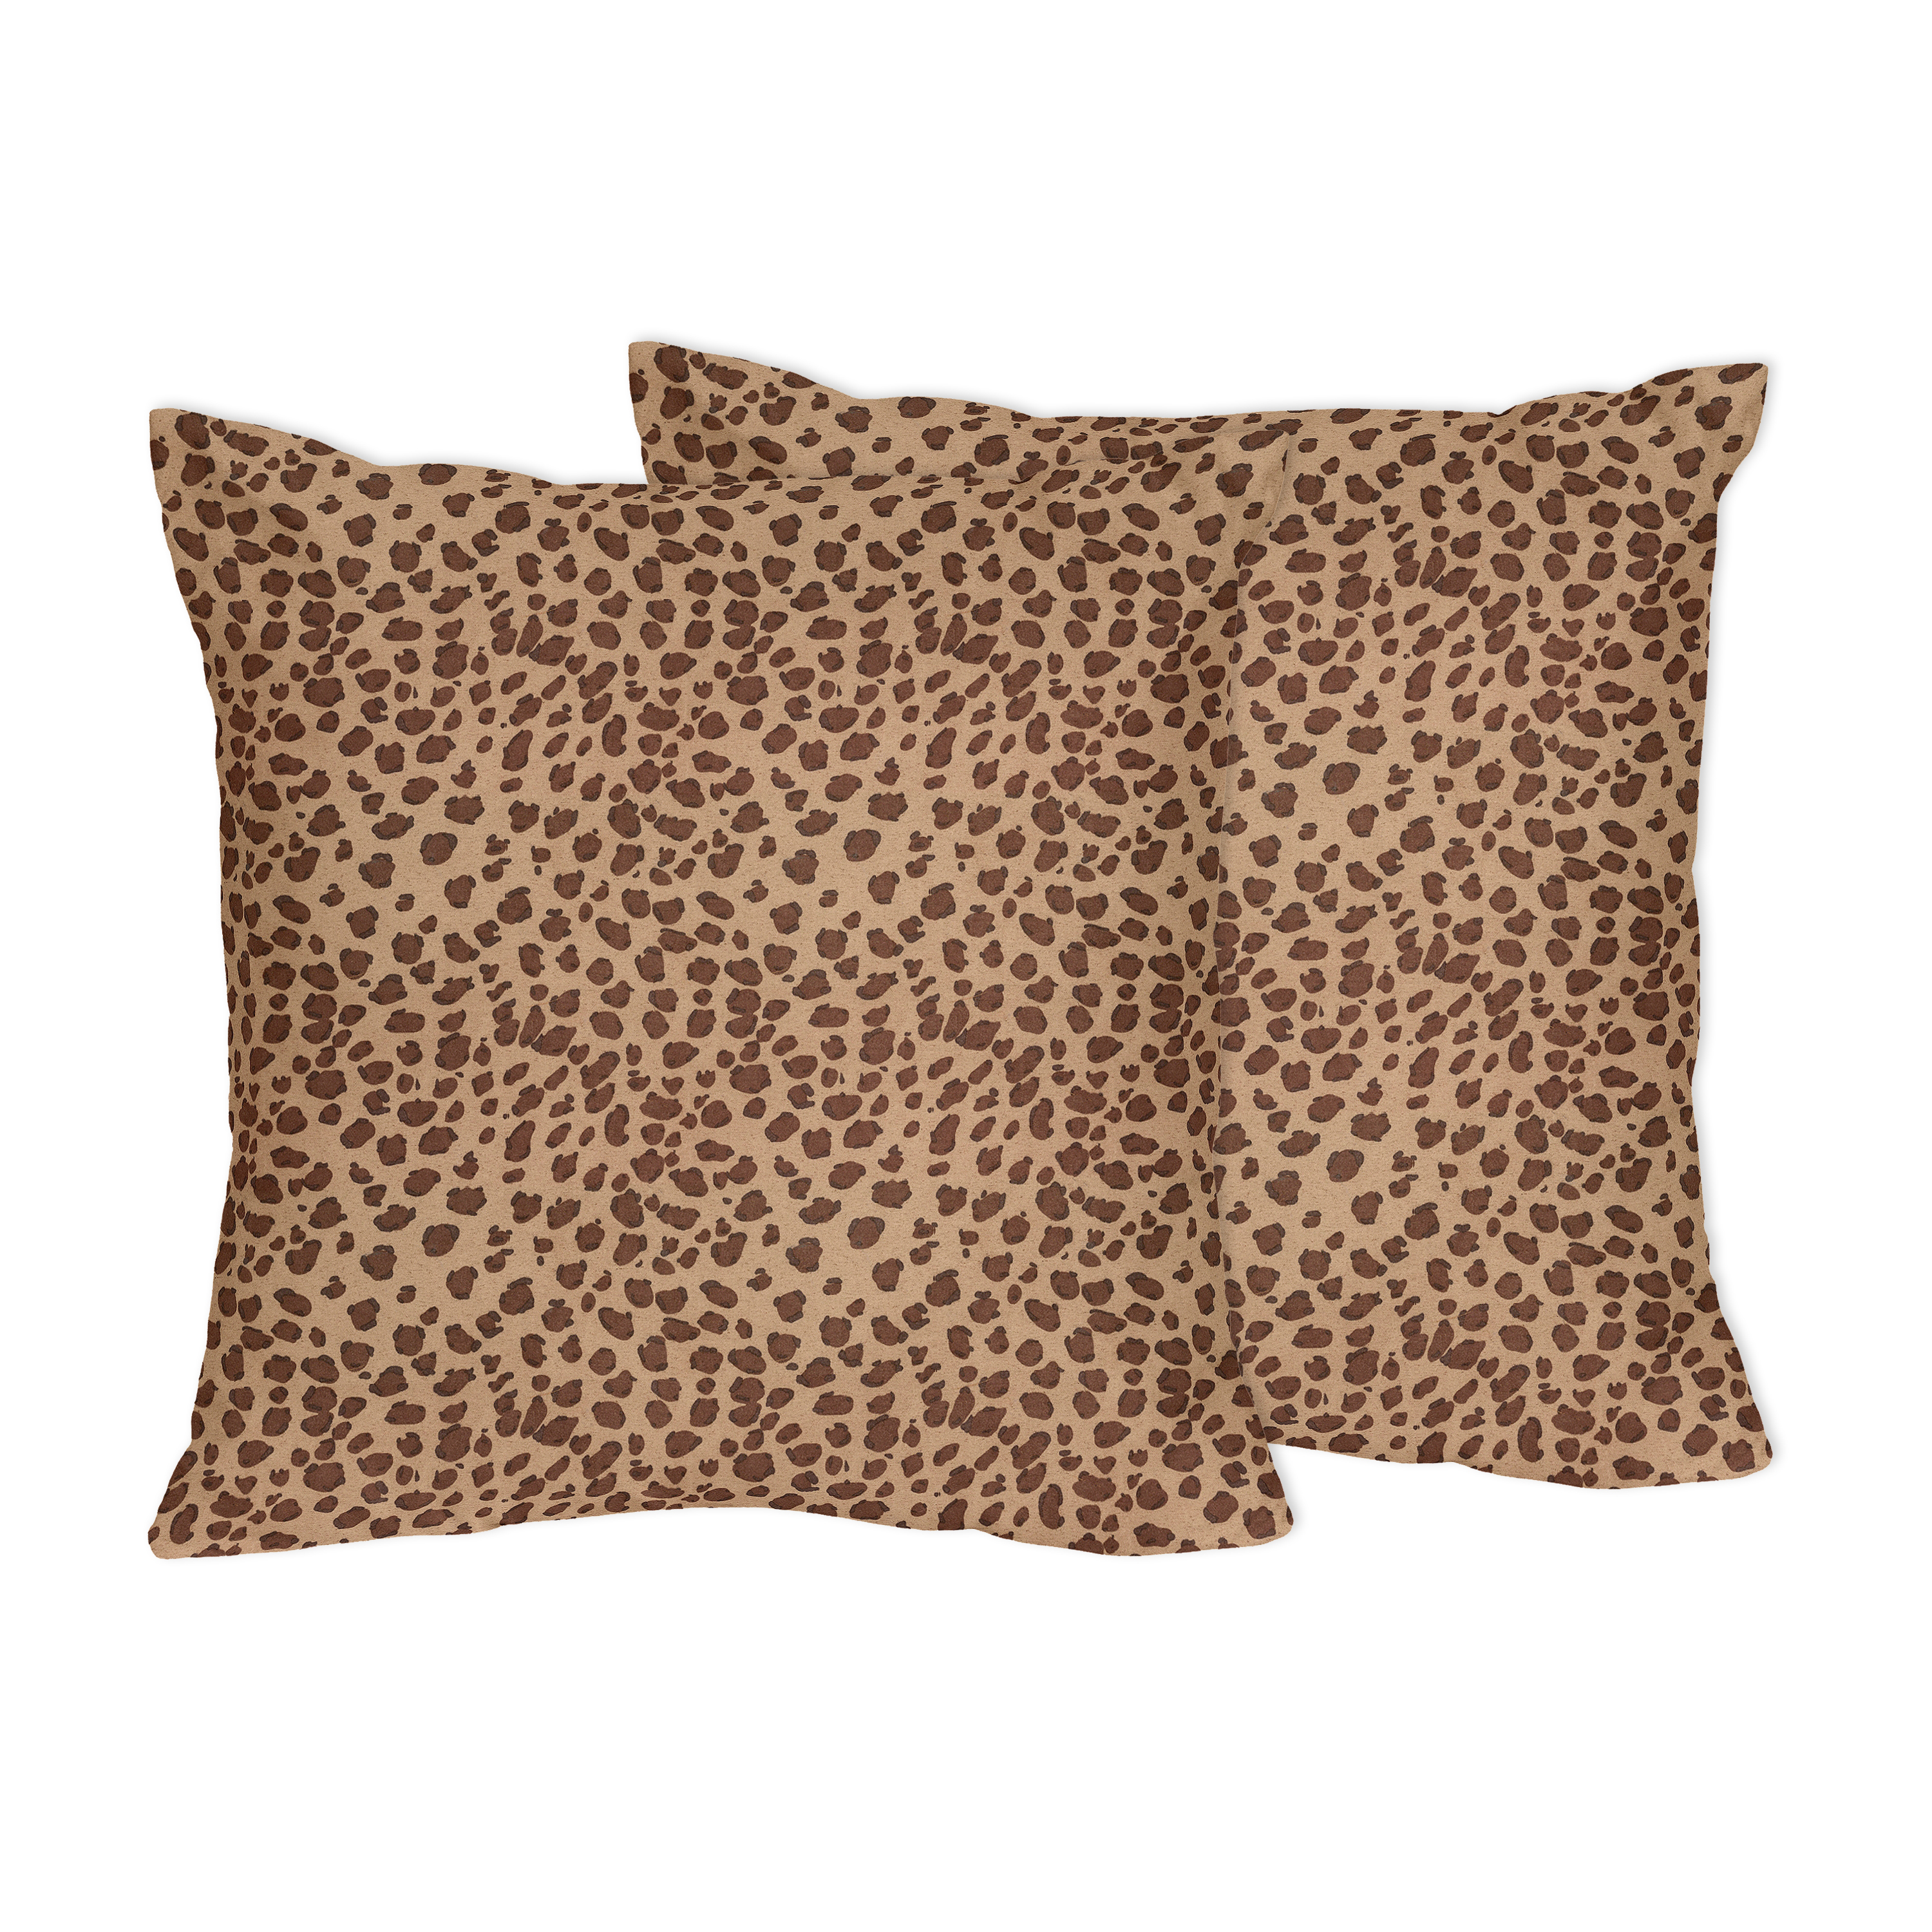 Decorative Pillows Kmart : Girls Accent Pillow Kmart.com